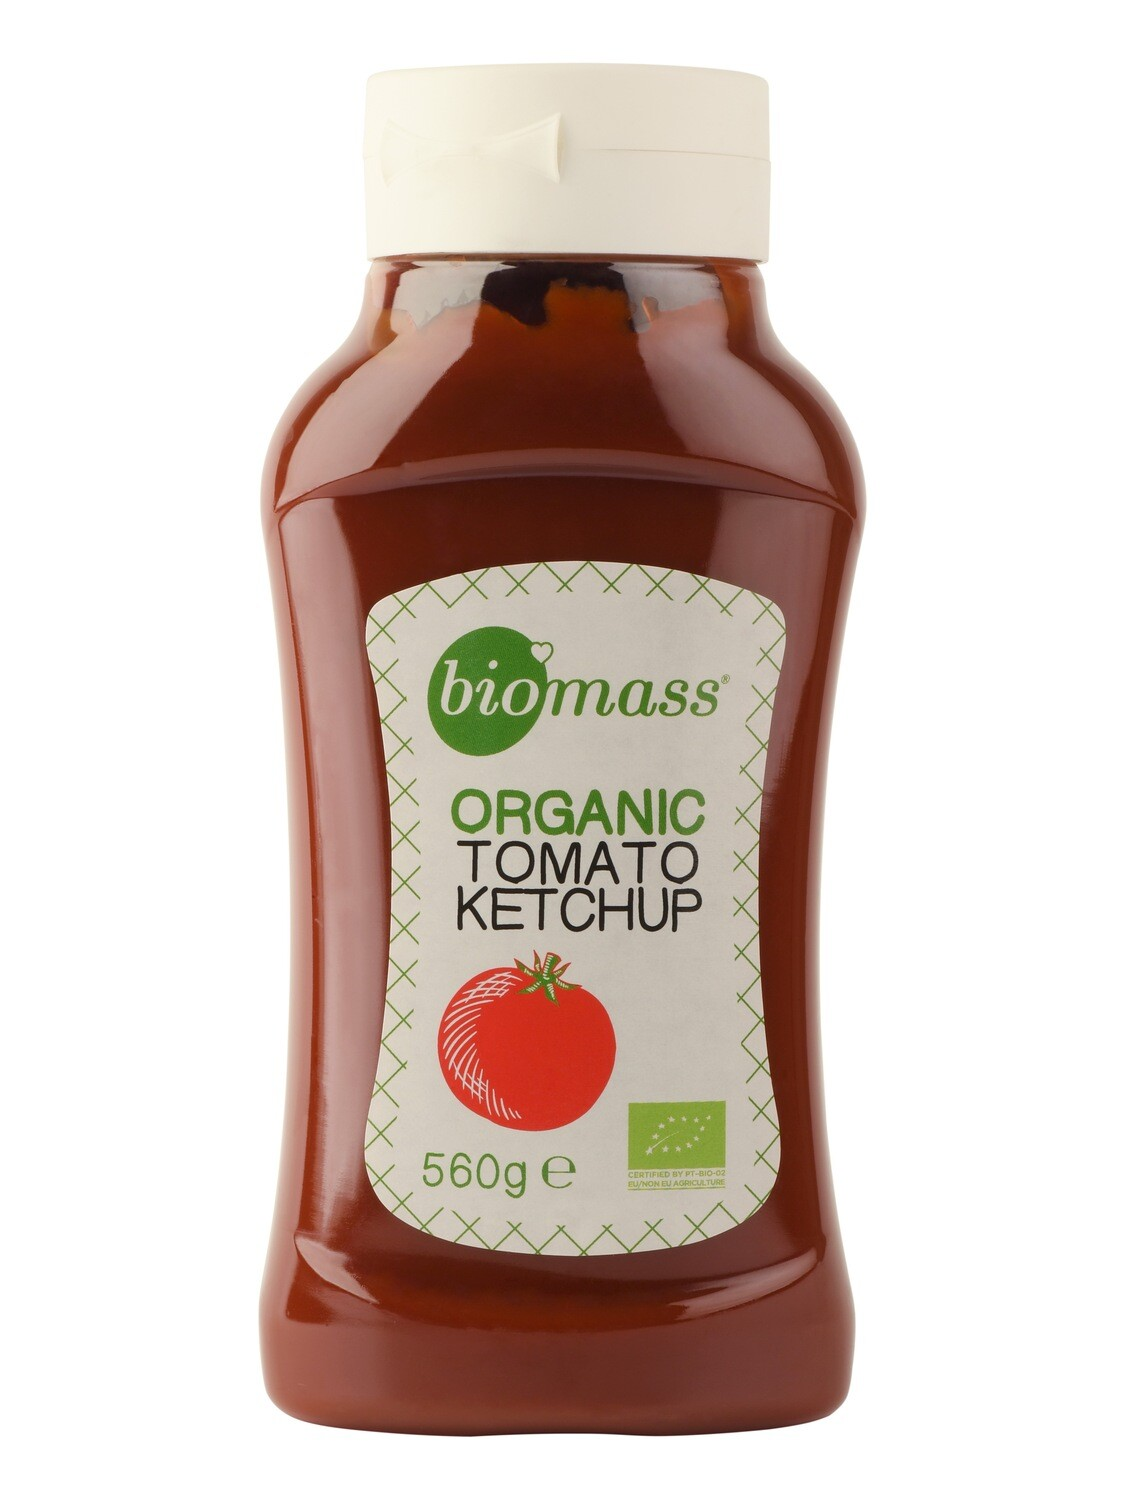 Ketchup Tomato Organic كاتشب عضوي (Bottle) - Biomass